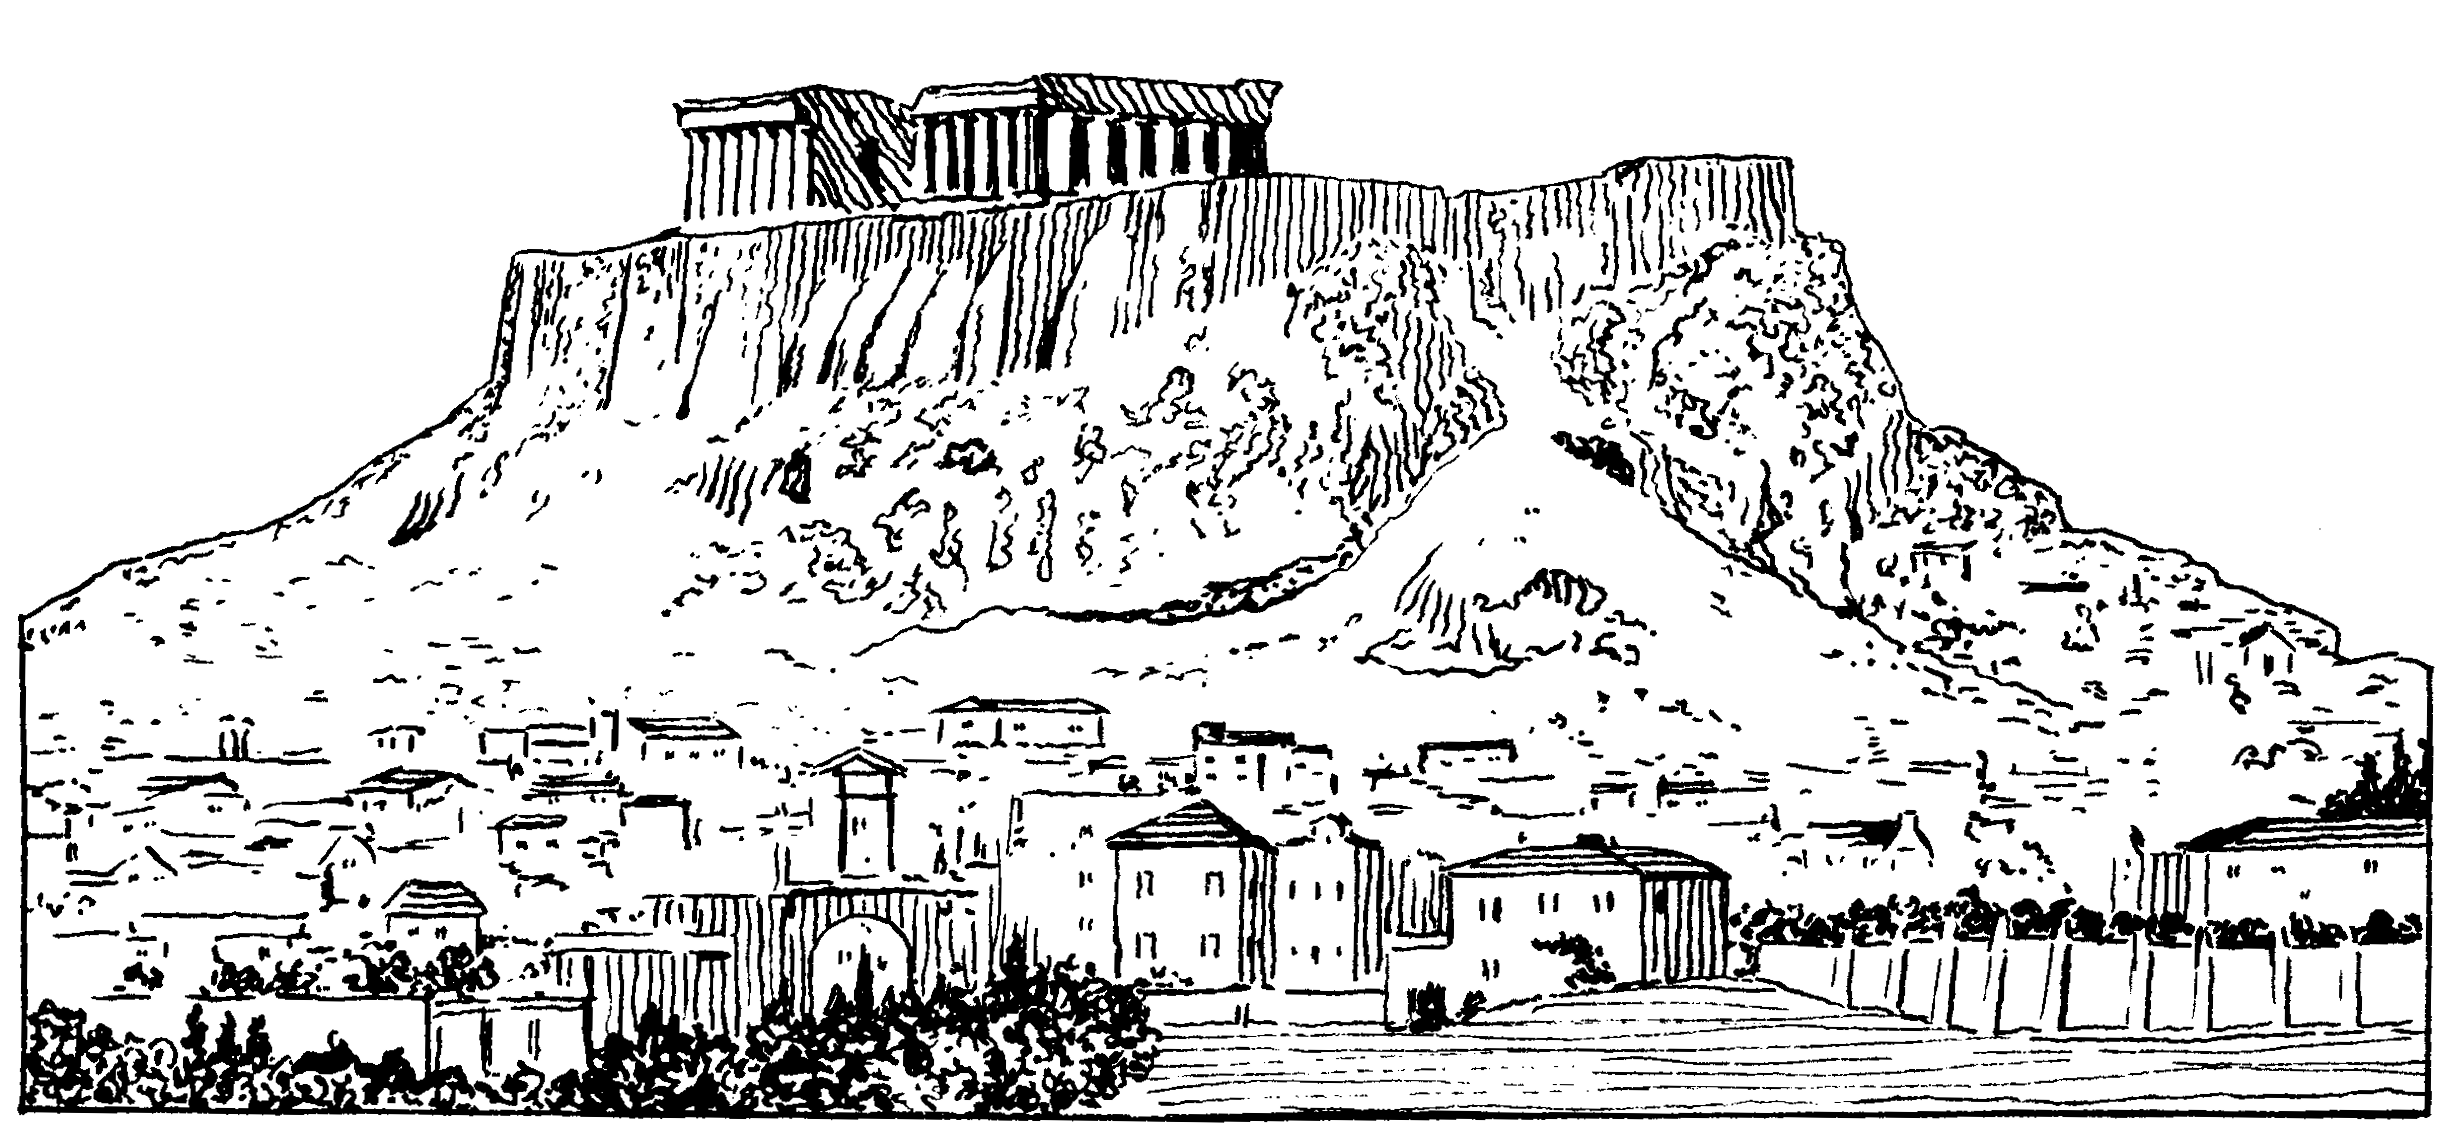 File:Acropolis 1 (PSF).png - Wikimedia Commons